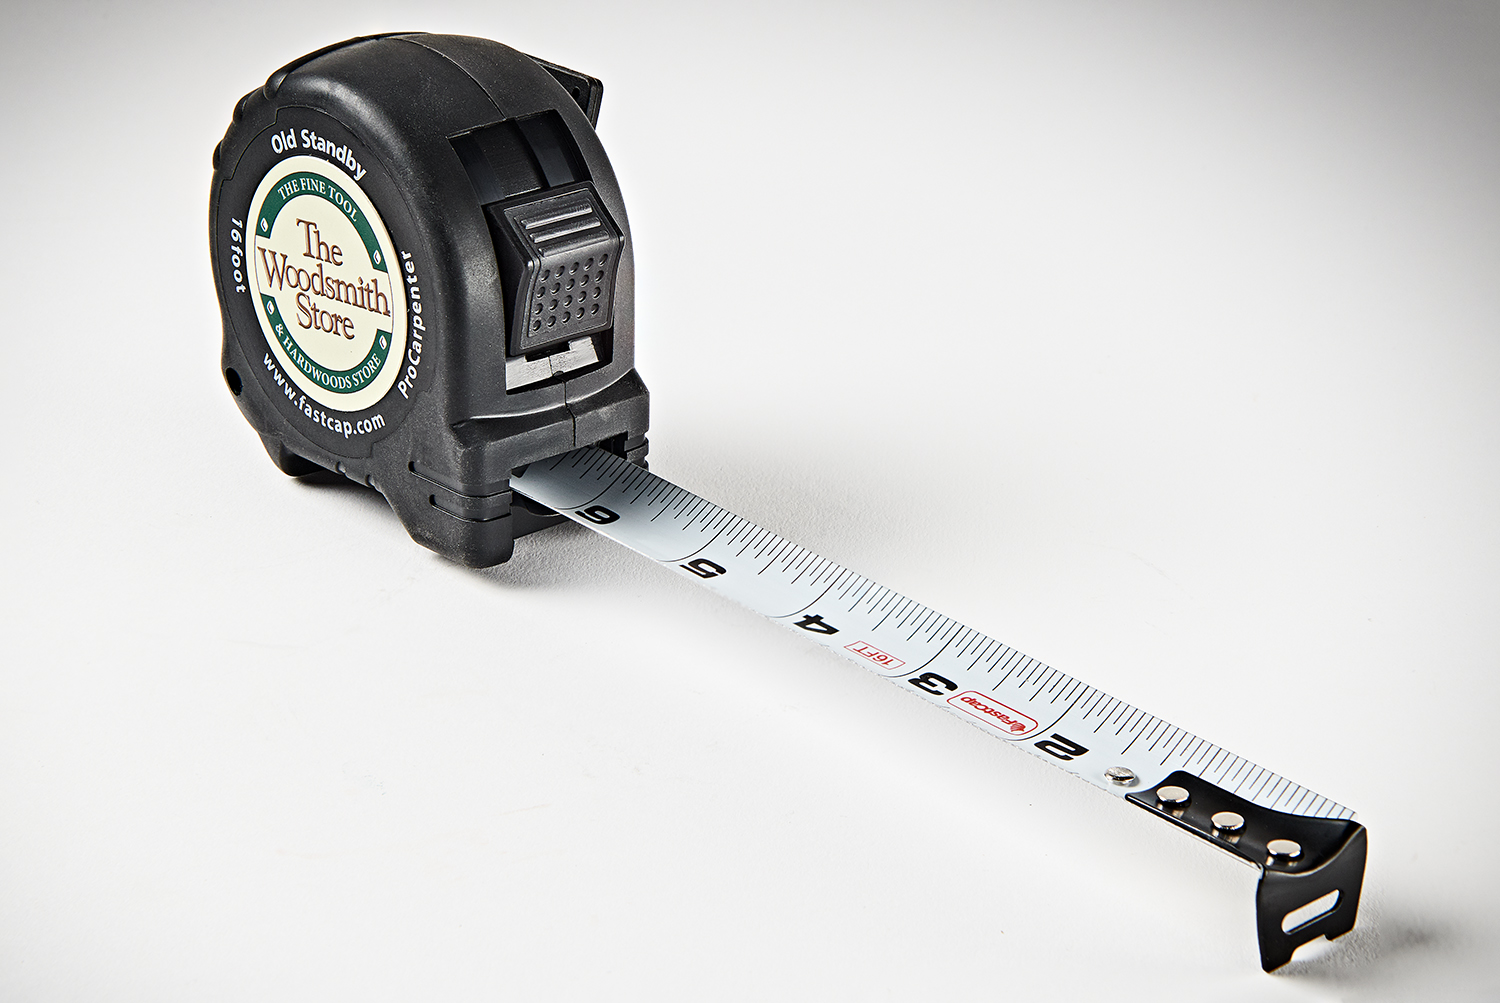 """The Woodsmith Store Logo Fastcap 16"""" Old Standby Tape Measure WSS-PS16"""